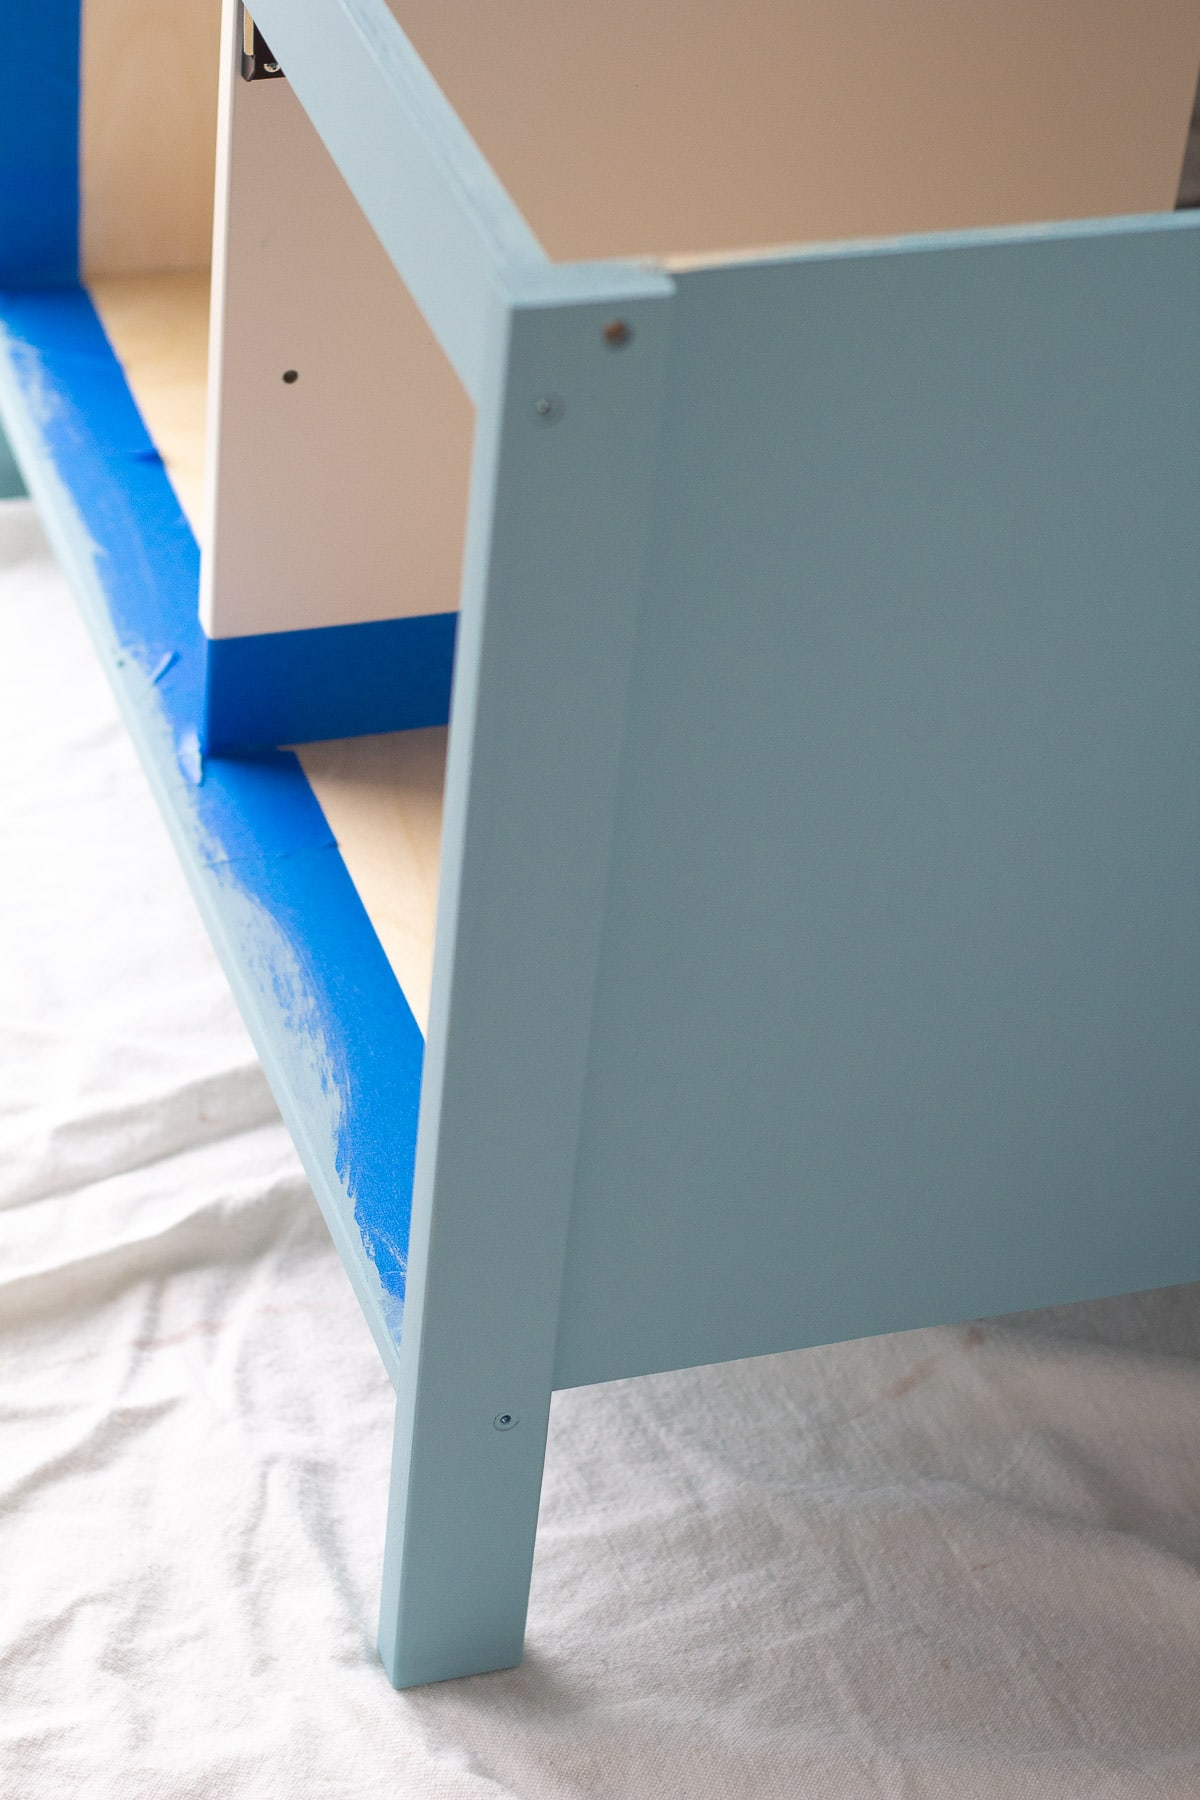 Painting an IKEA play kitchen with blue paint.